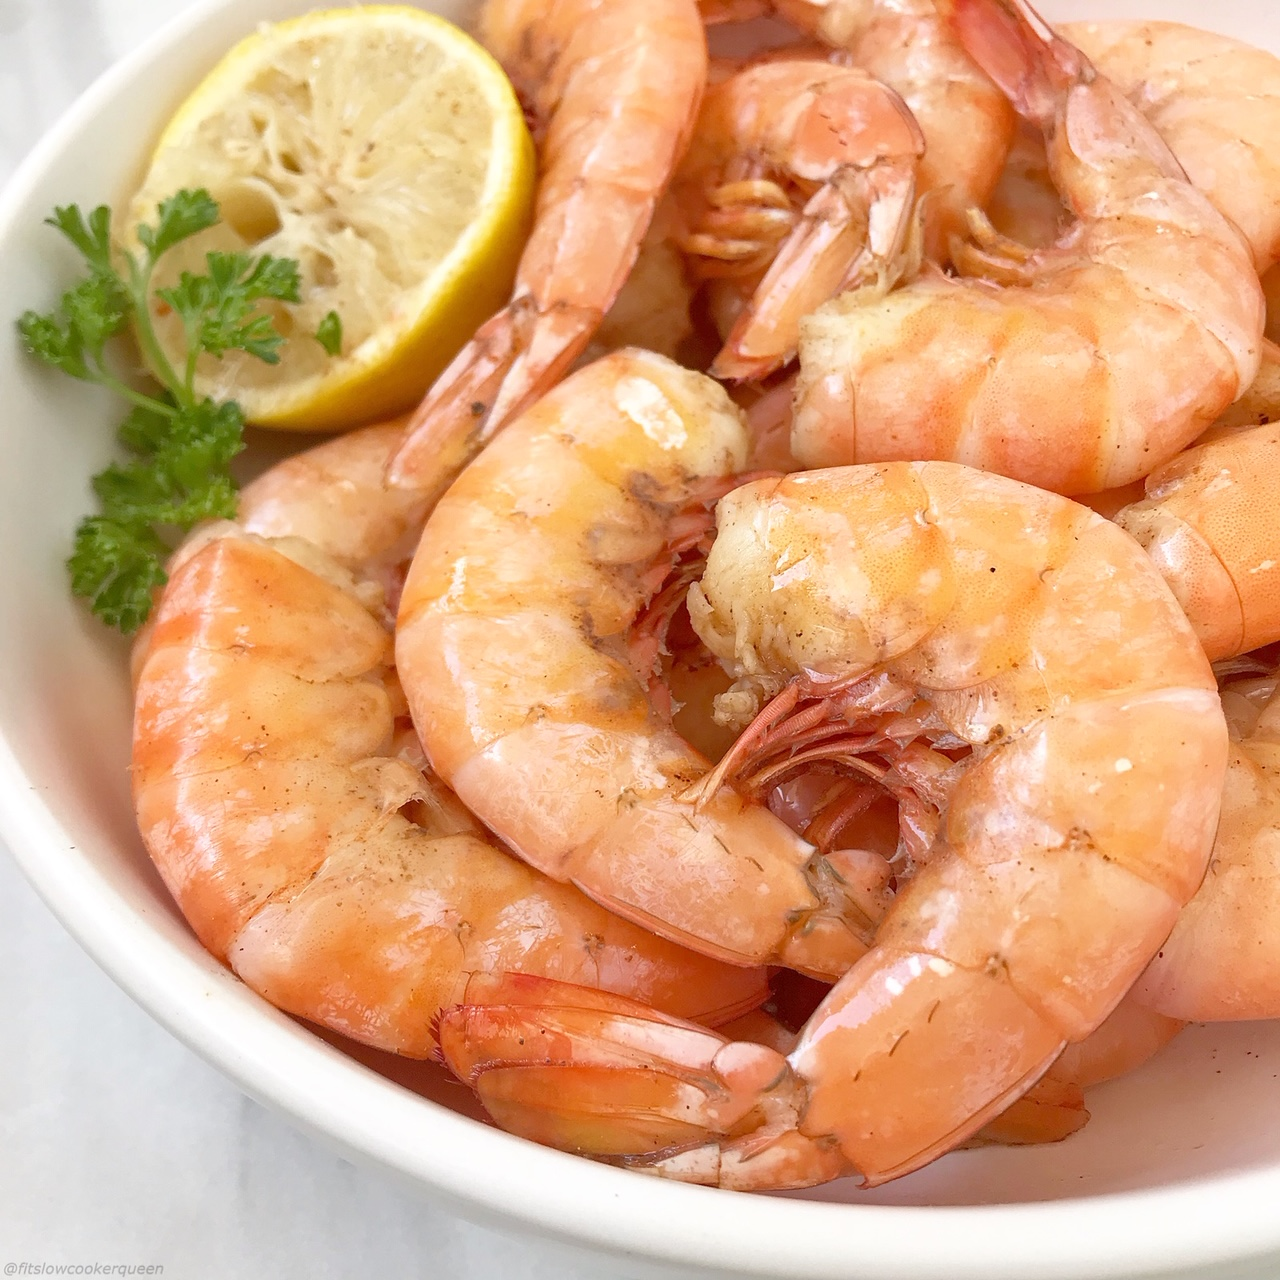 Peel and Eat shrimp are an easy, healthy appetizer or snack. This slow cooker version uses a homemade Old Bay seasoning and cooks in just an hour.